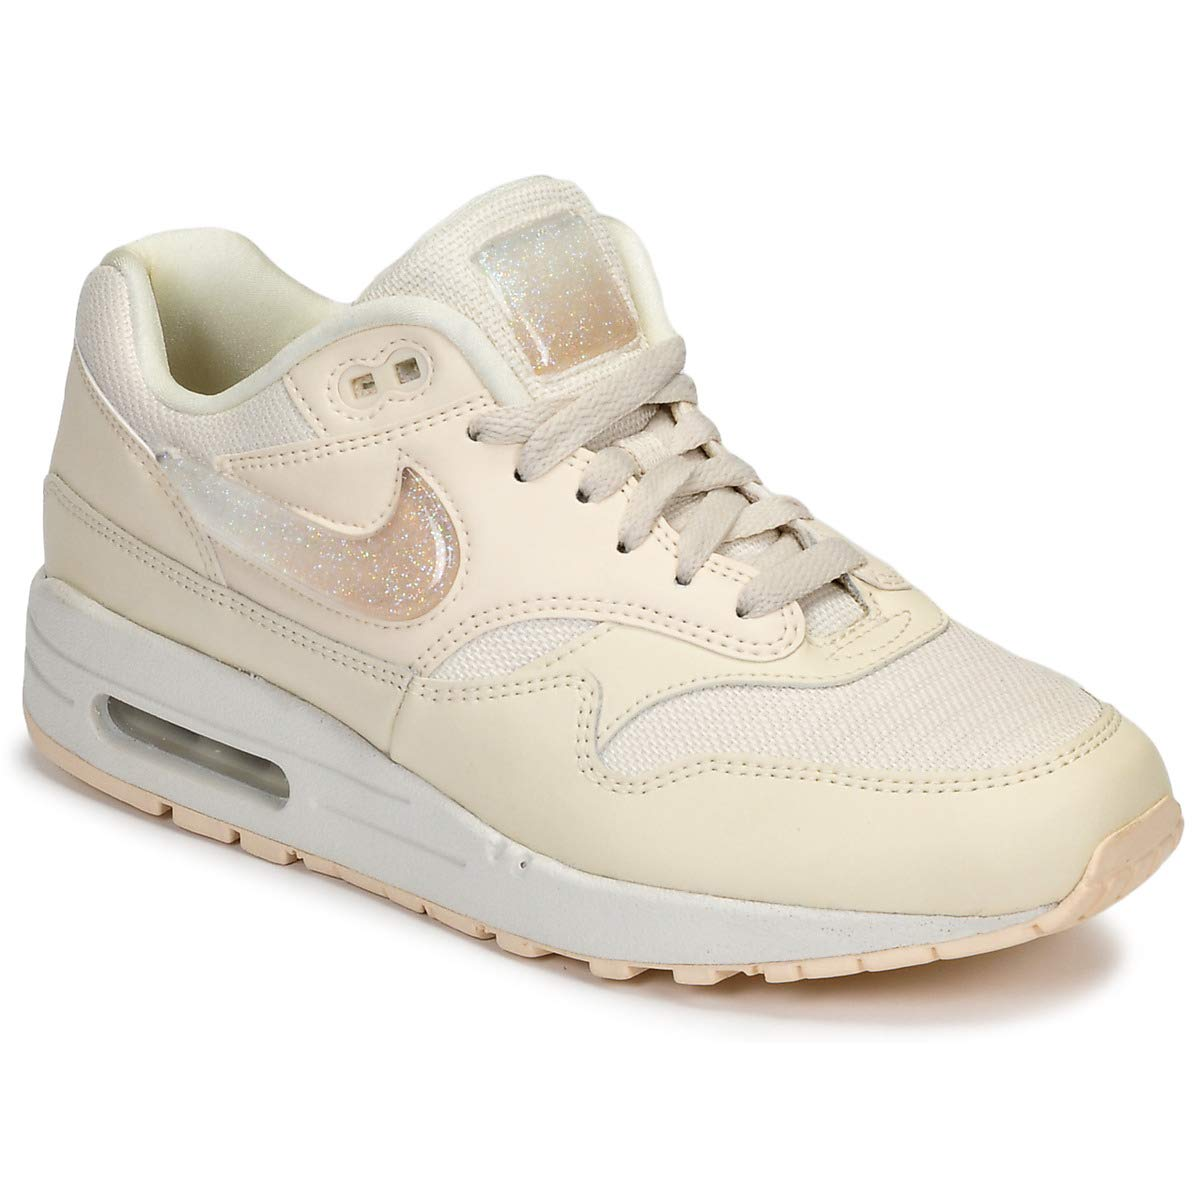 Nike Women's Air Max 1 JP White AT5248-100 (Size: 5.5)